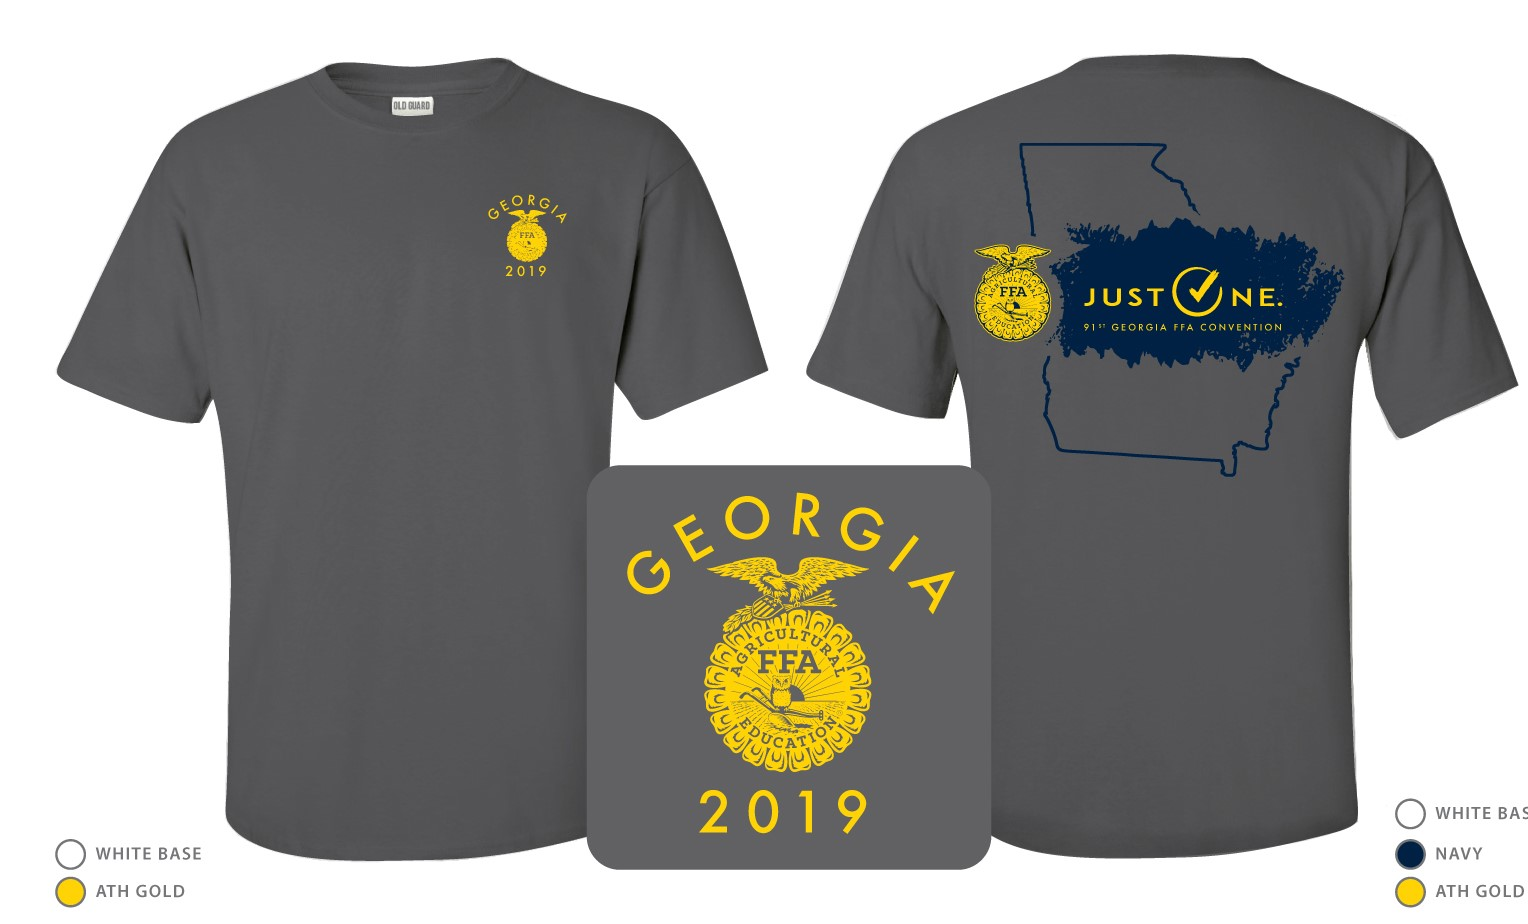 66bae7df This year's convention t-shirt is a Comfort Colors! You can pre-order T- shirts through the online registration system for $16.00 or purchase them  on site ...